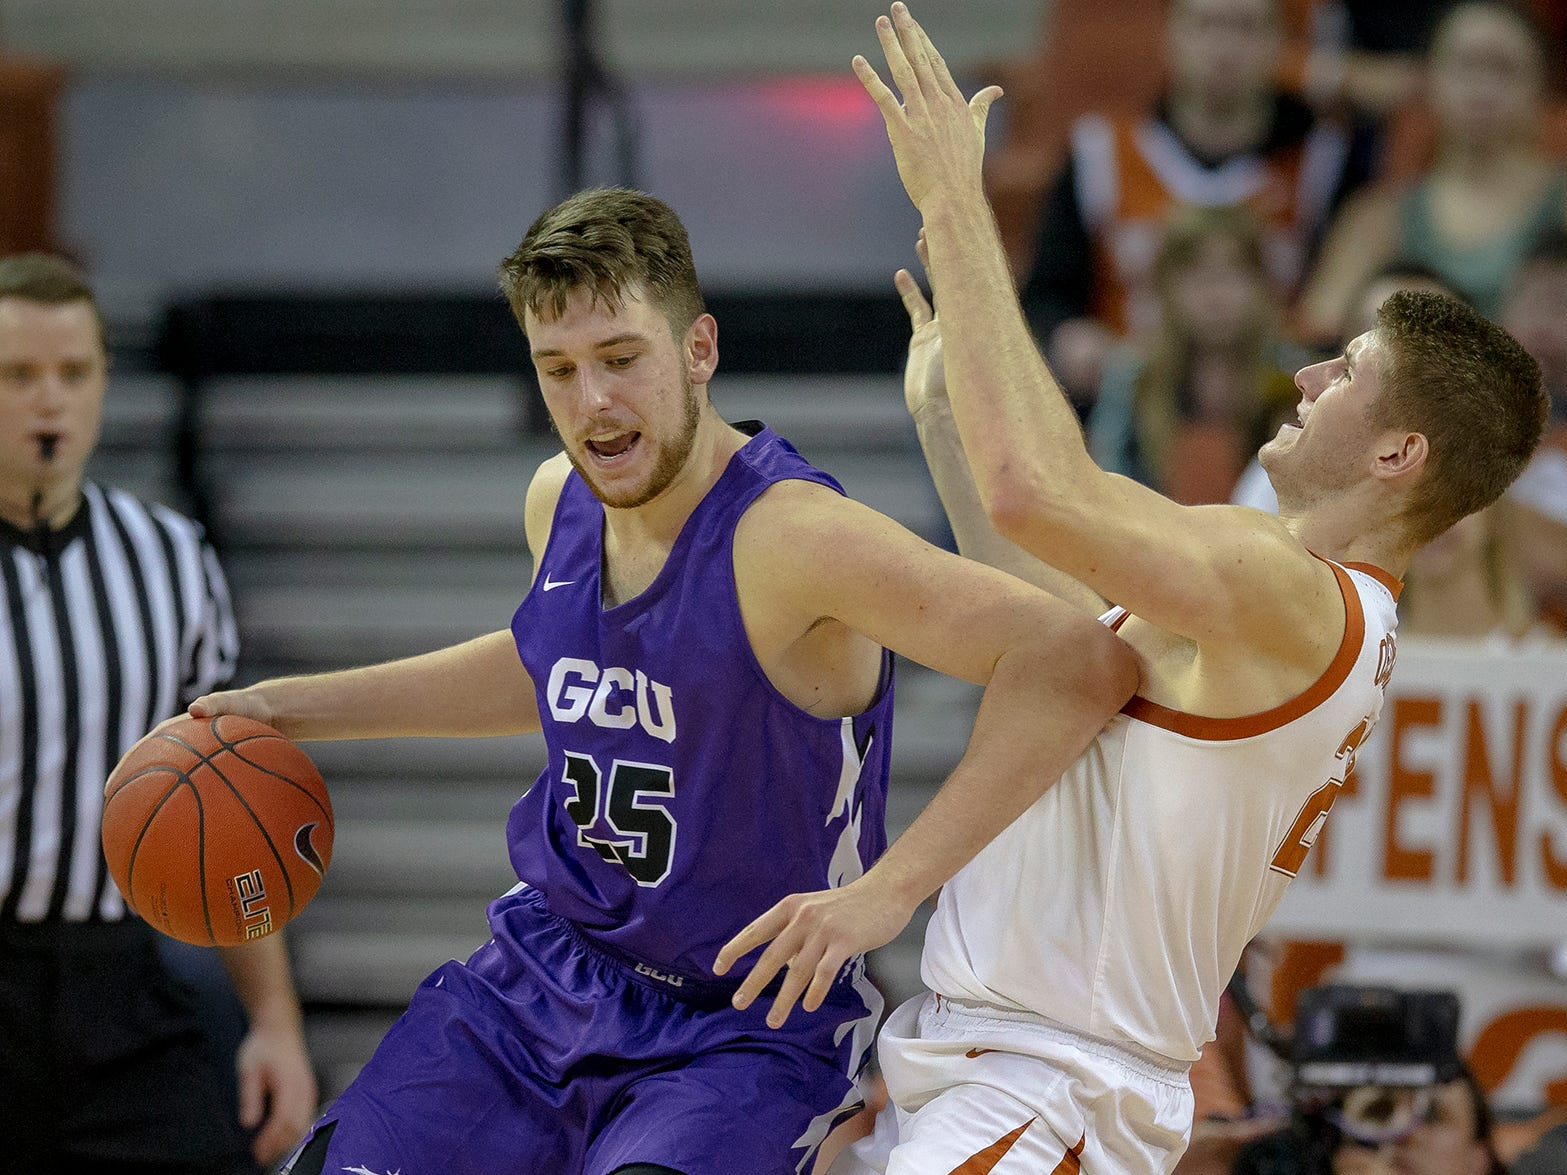 Grand Canyon center Alessandro Lever (25) backs into Texas forward Dylan Osetkowski (21) during an NCAA college basketball game on Saturday, Dec. 15, 2018, in Austin, Texas.